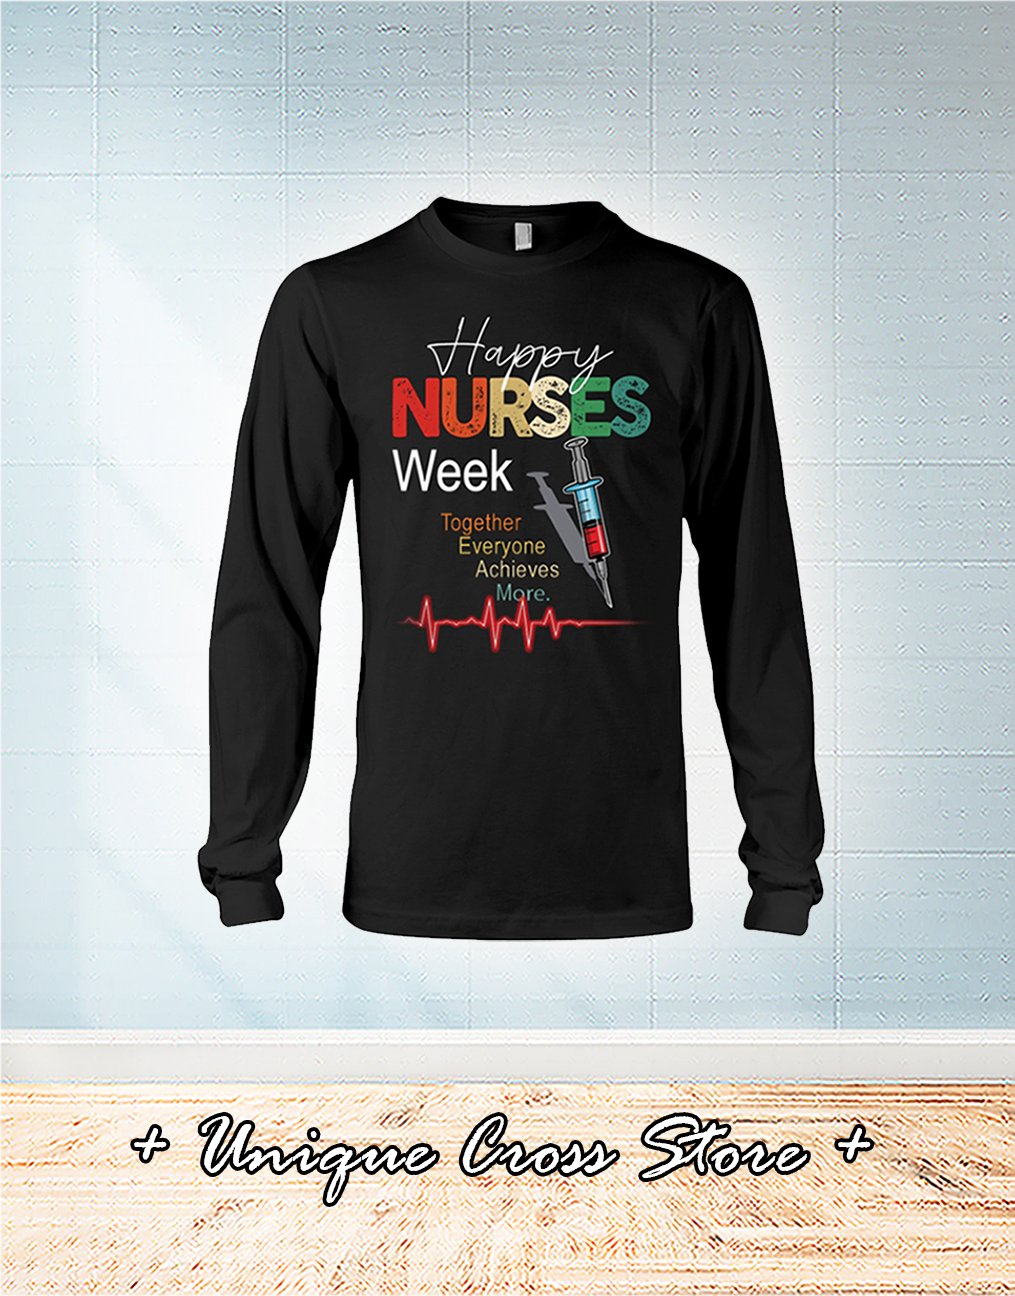 Happy Nurses Weed Together Everyone Achieves More long sleeve